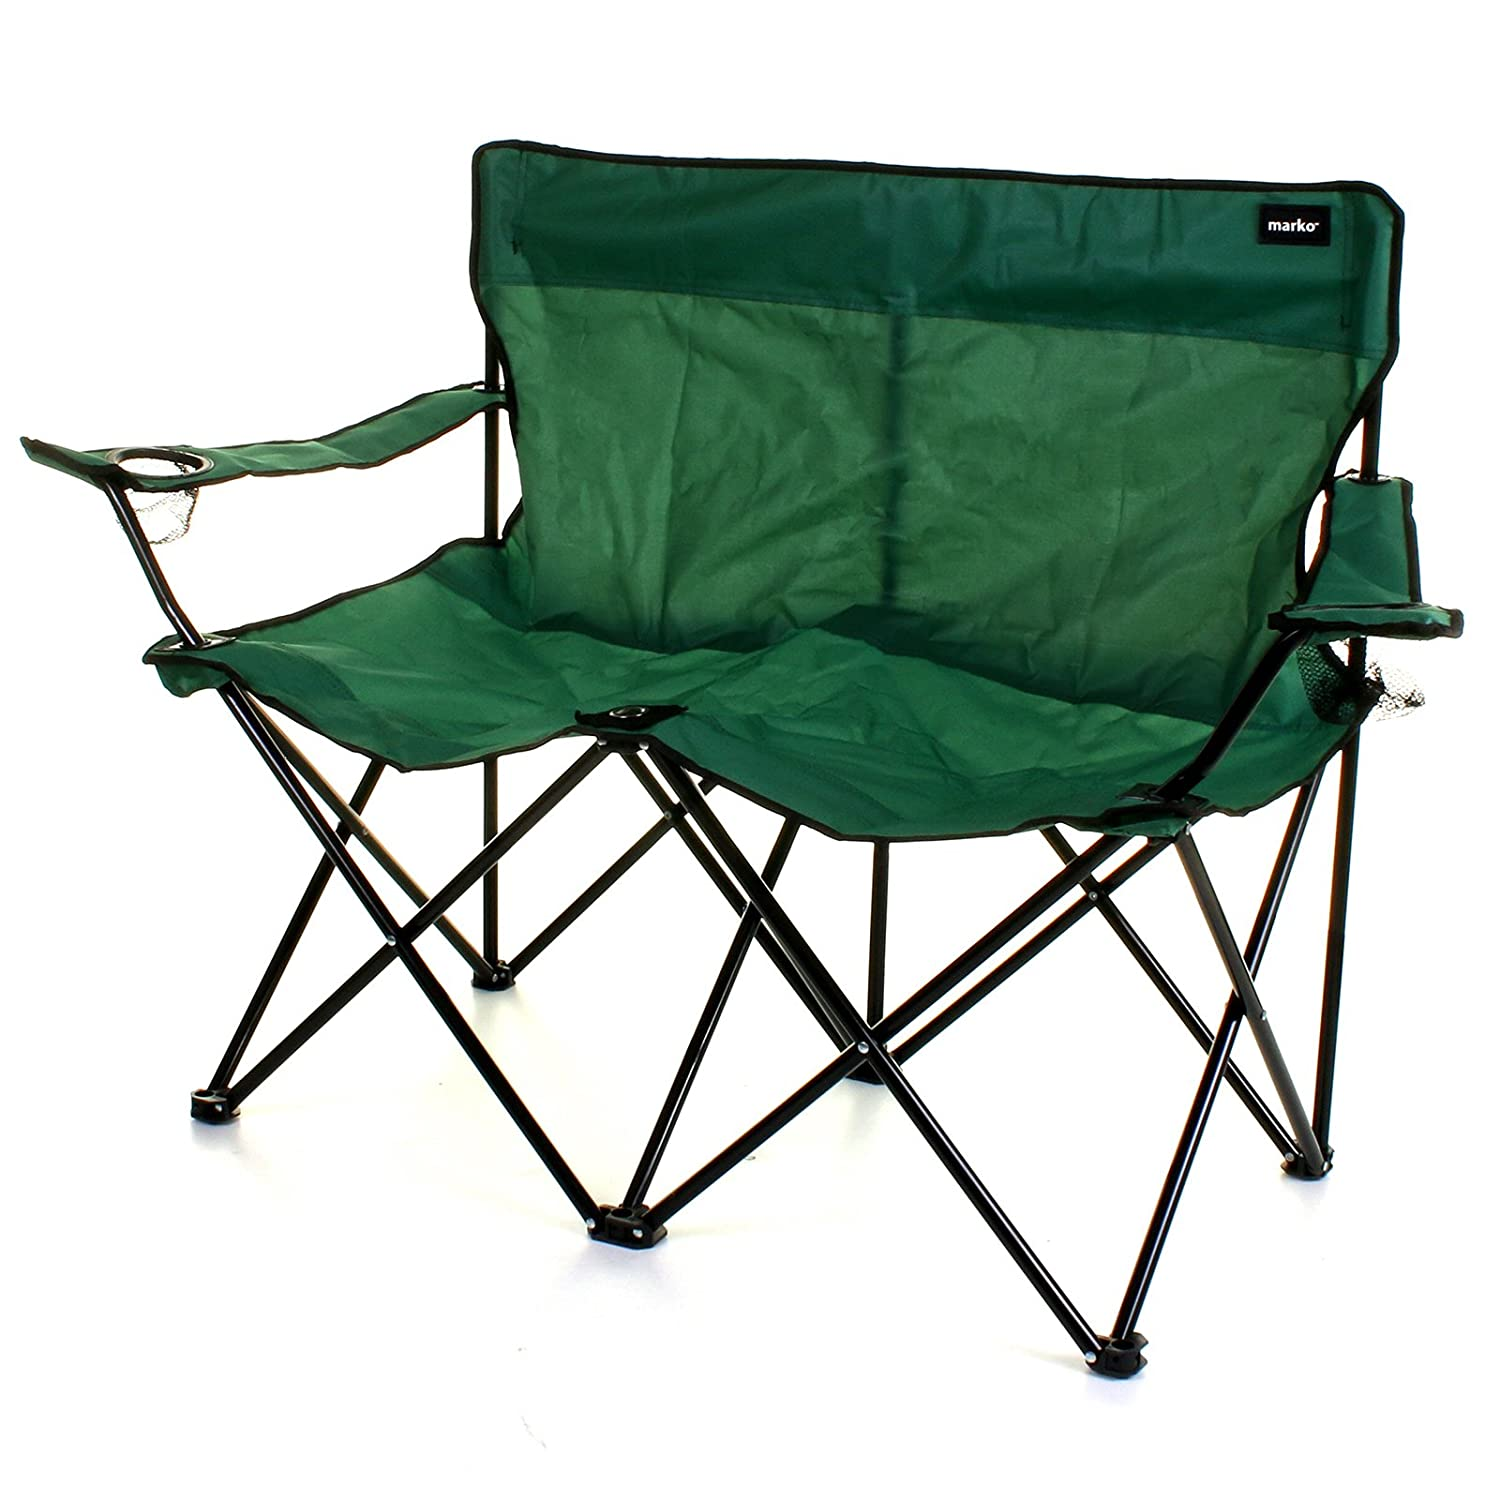 Surprising Marko Outdoor Double Camping Chair 2 Seater Folding Portable Fishing Picnic Steel Festival Green Pabps2019 Chair Design Images Pabps2019Com